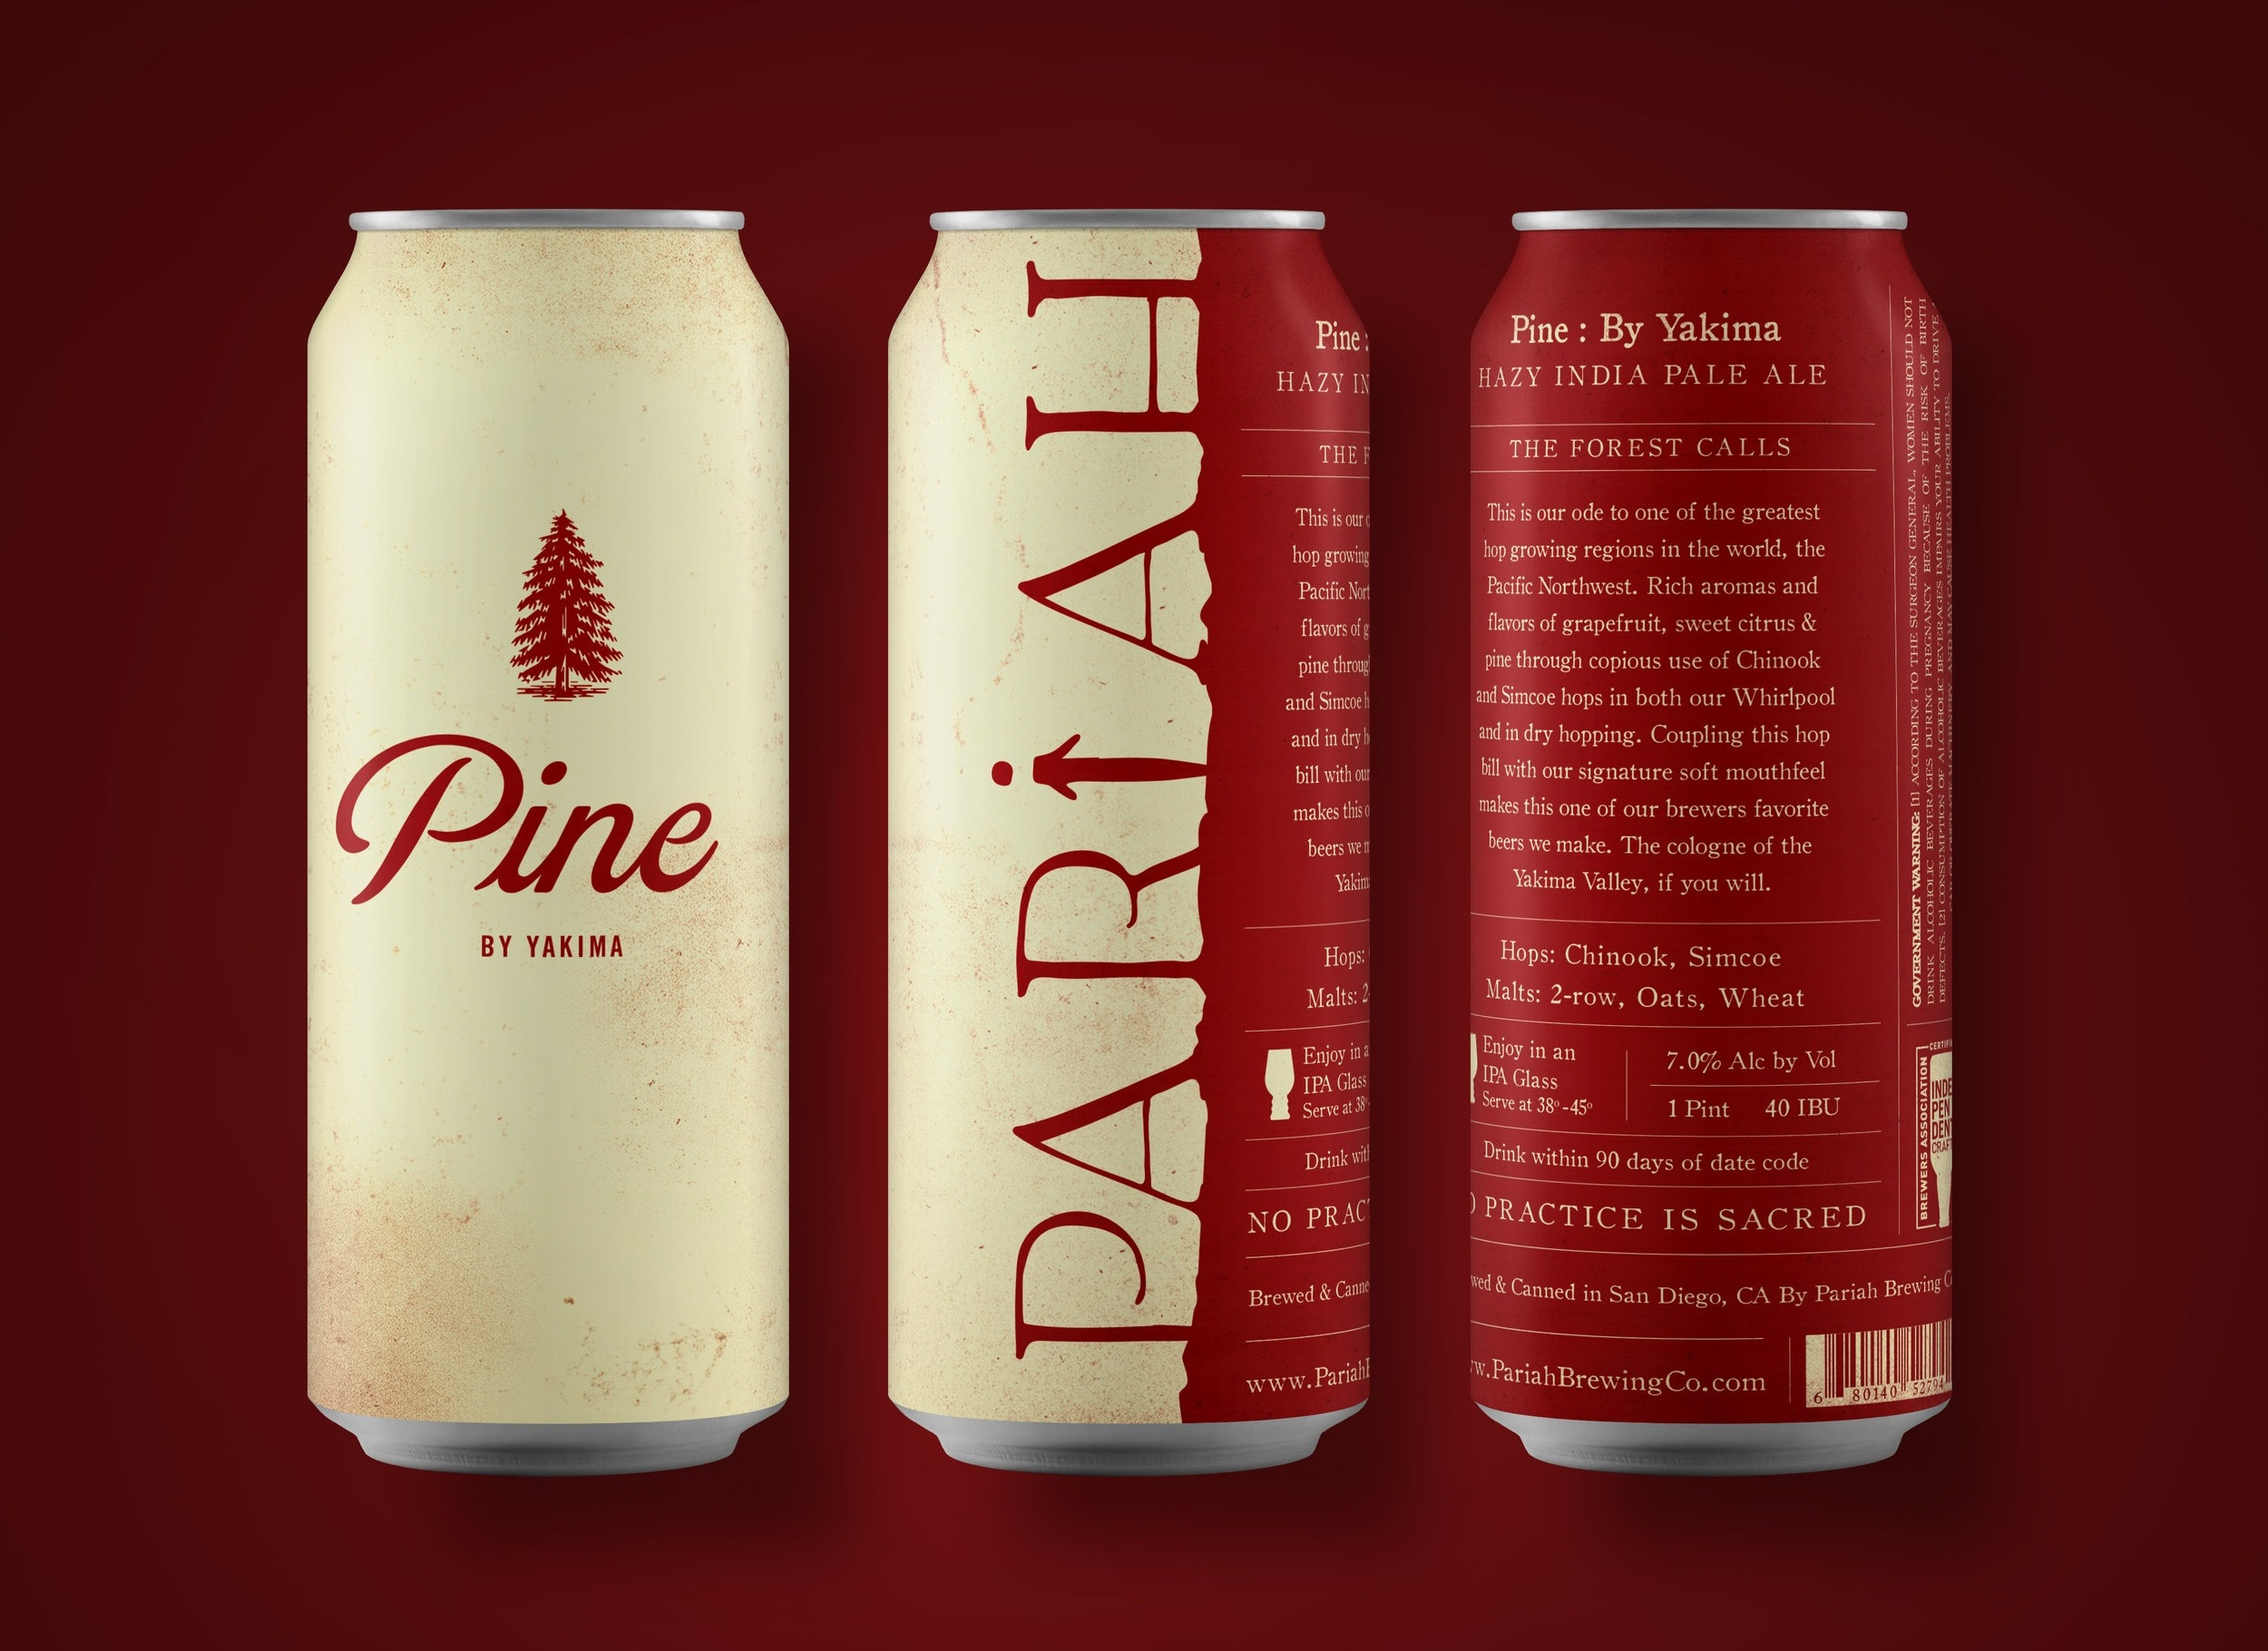 PINE: BY YAKIMA IPA - 7%; 40 IBU — Chinook & Simcoe focused American IPA. Notes of grapefruit, sweet citrus, pine, softly resinous. The cologne of the Yakima Valley.